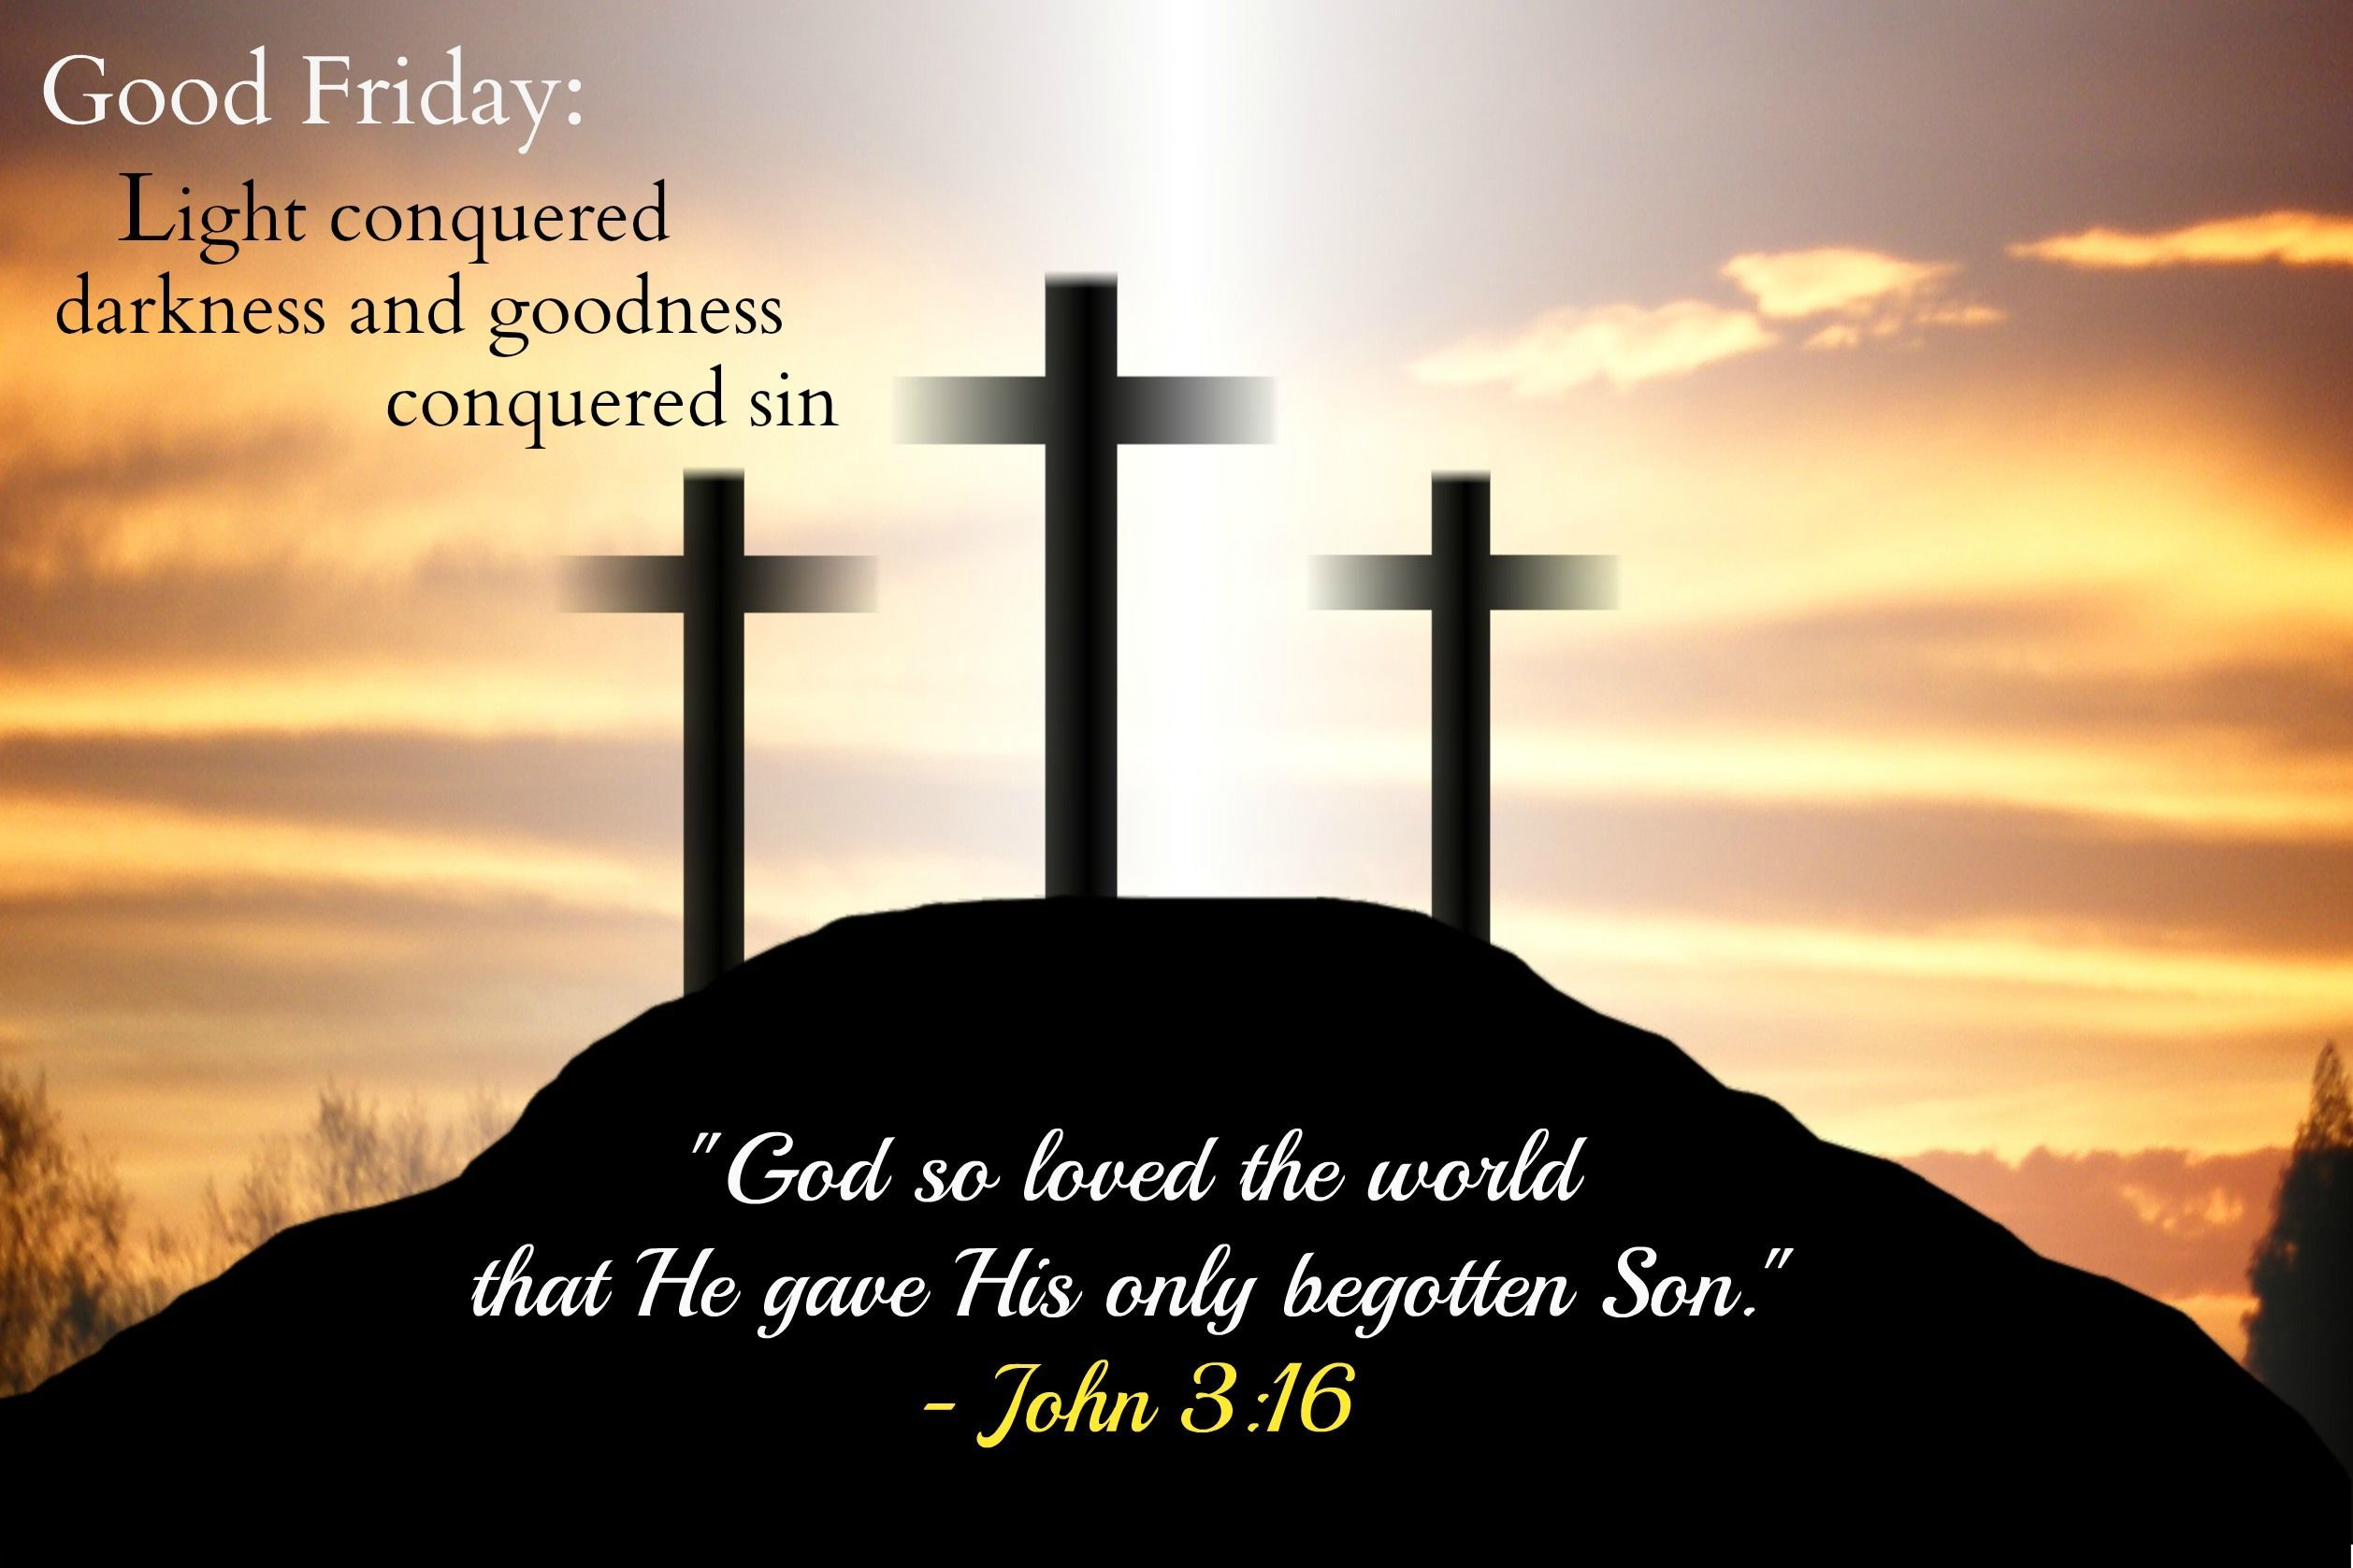 Good Friday Good Friday Good Friday Quotes Good Friday Images Good